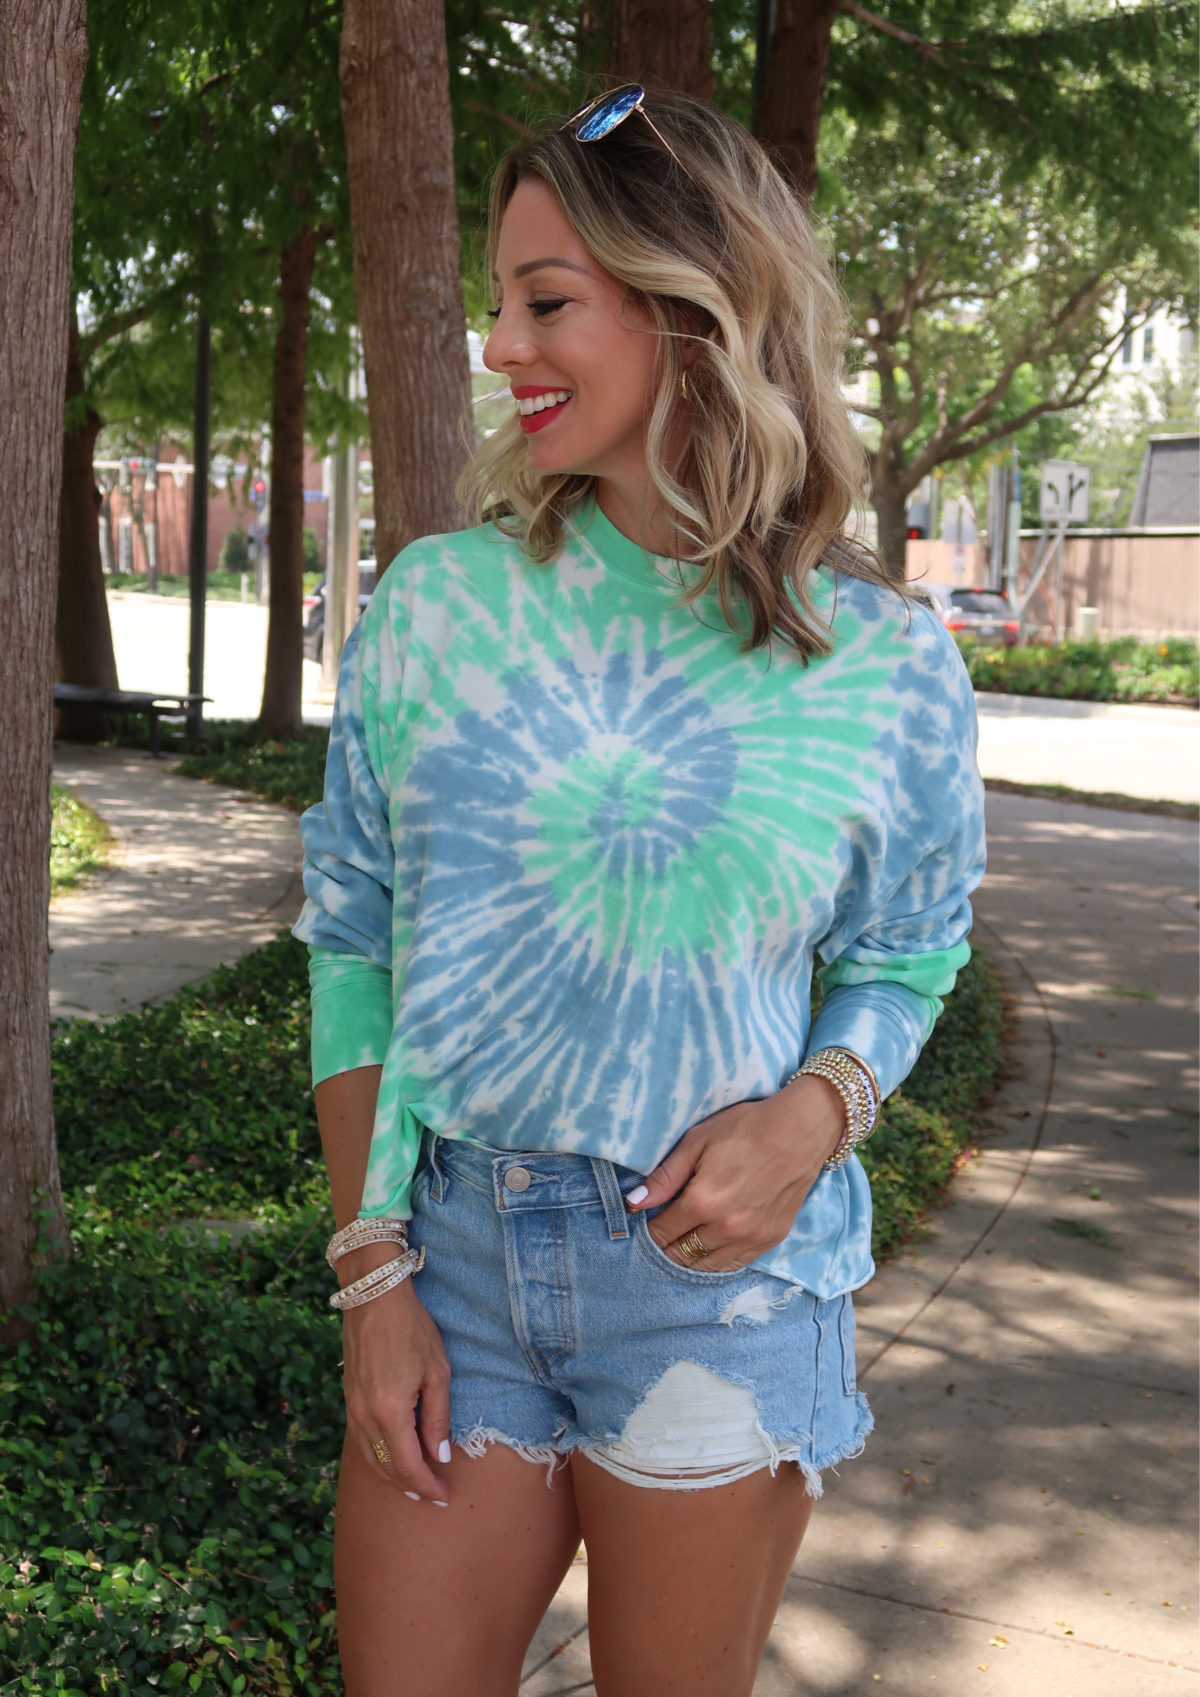 Flirty Summer Styles & Date Night Dresses, Tie Dye Tee, Cutoff Shorts, Studded Slides